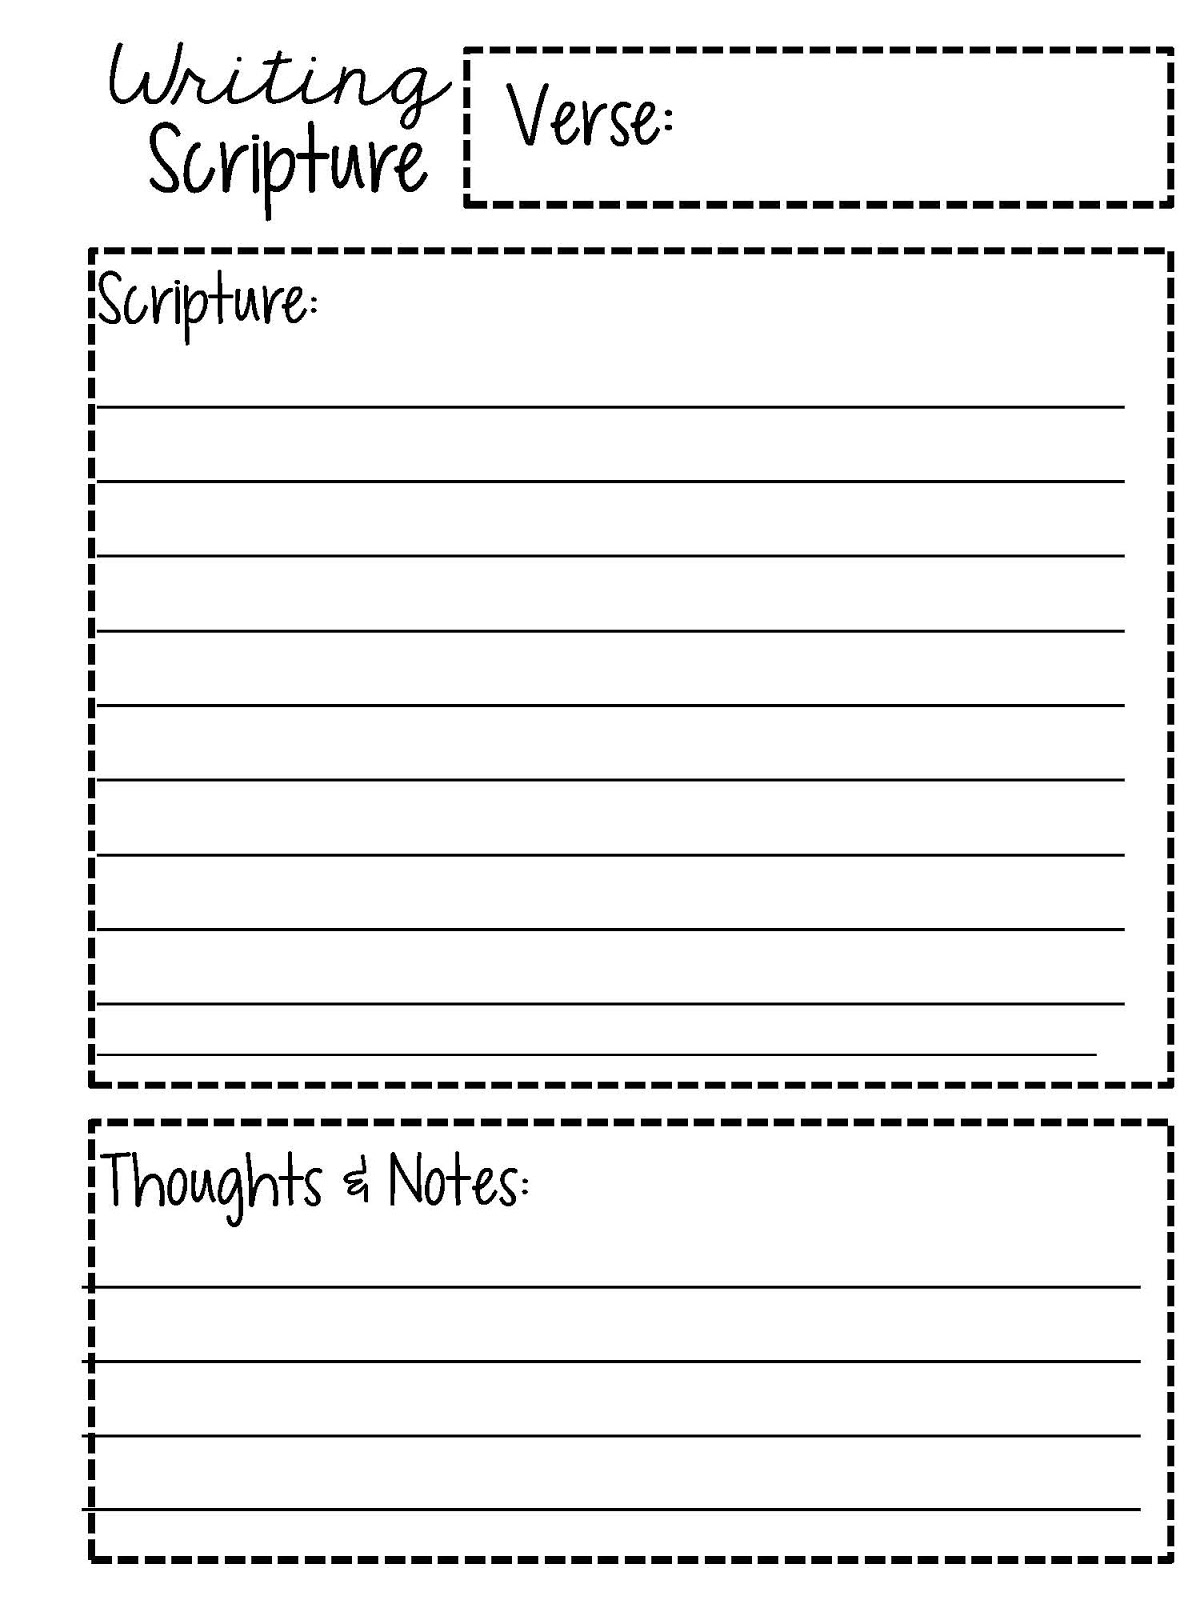 Sweet Blessings March Scripture Writing Plan